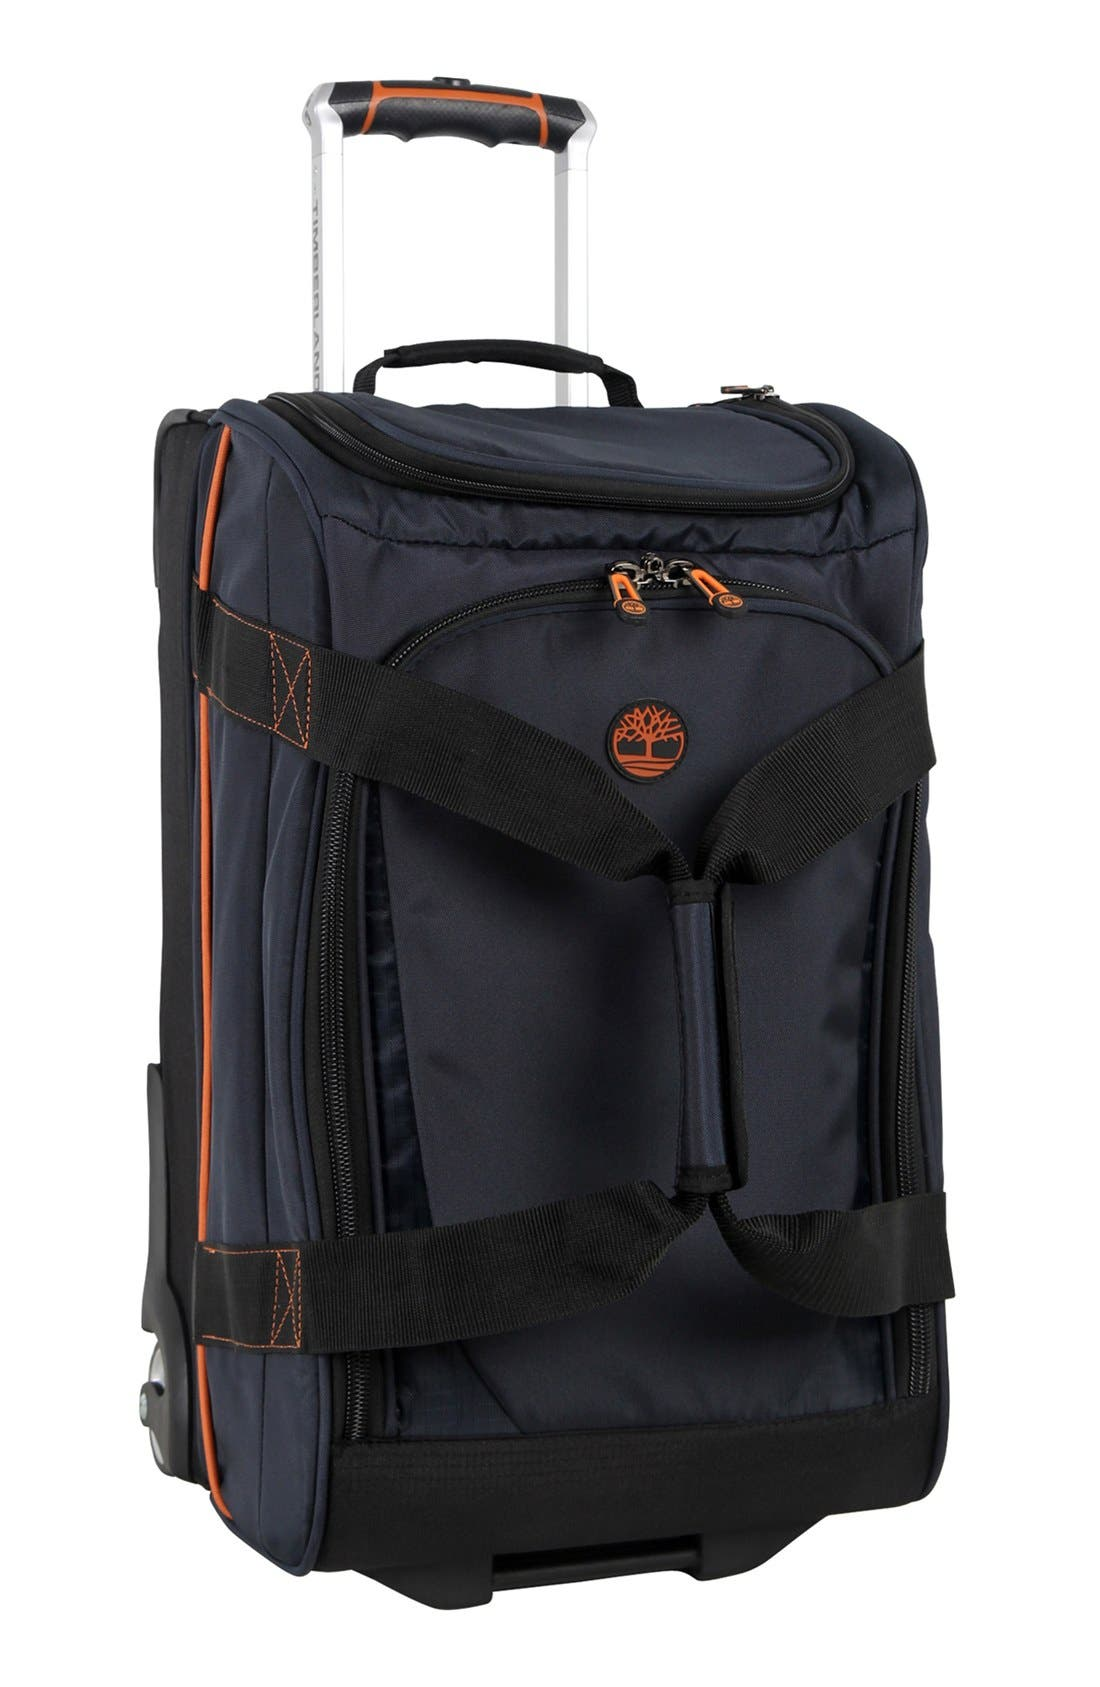 Alternate Image 1 Selected - Timberland 'Mascoma' Rolling Duffel Bag (22 Inch)